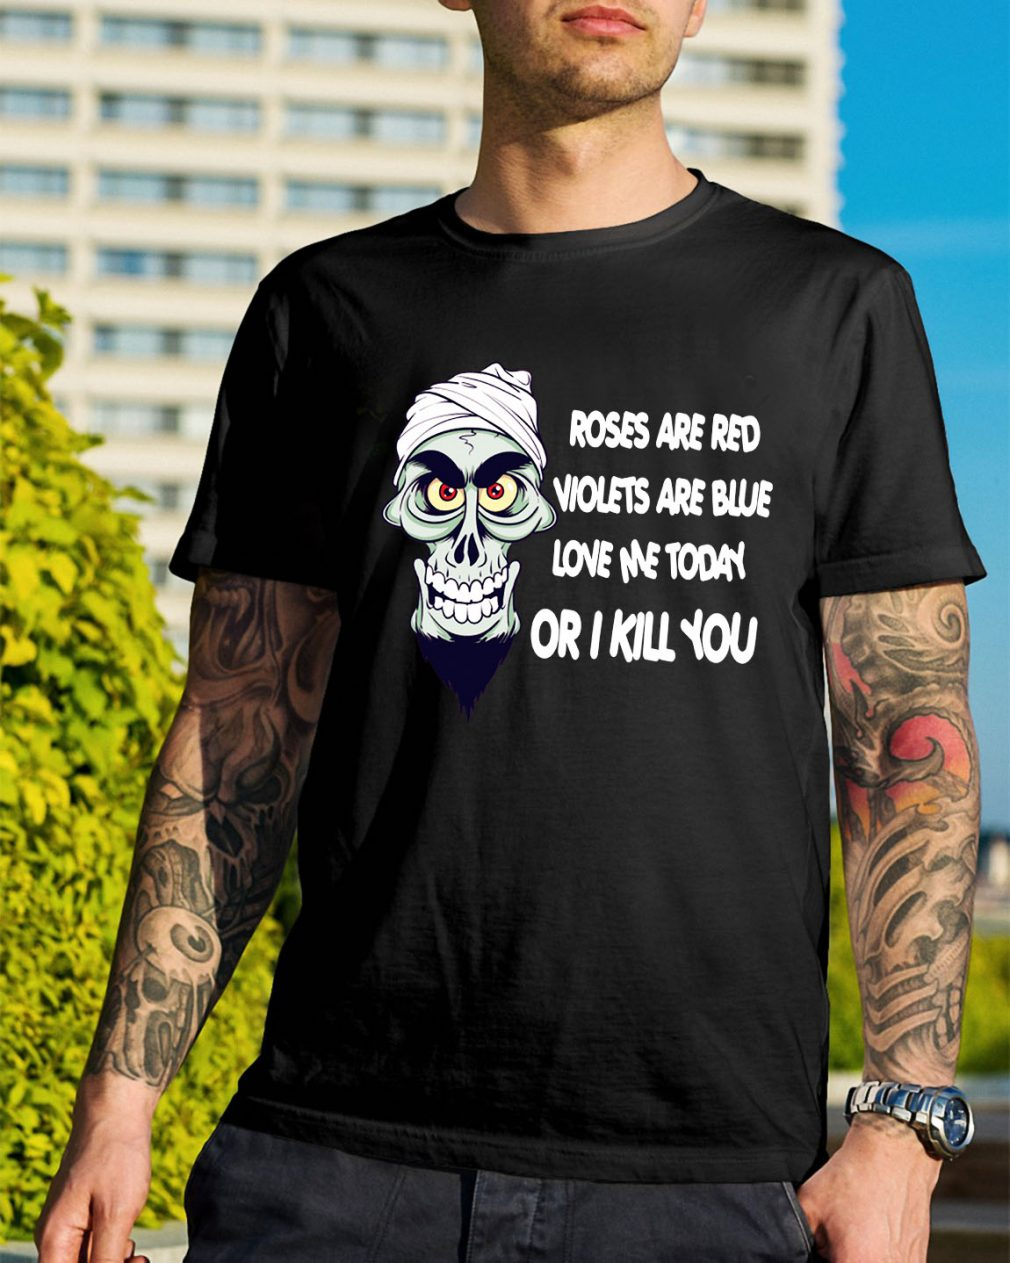 Skeleton roses are red violets are blue love me today or I kill you shirt